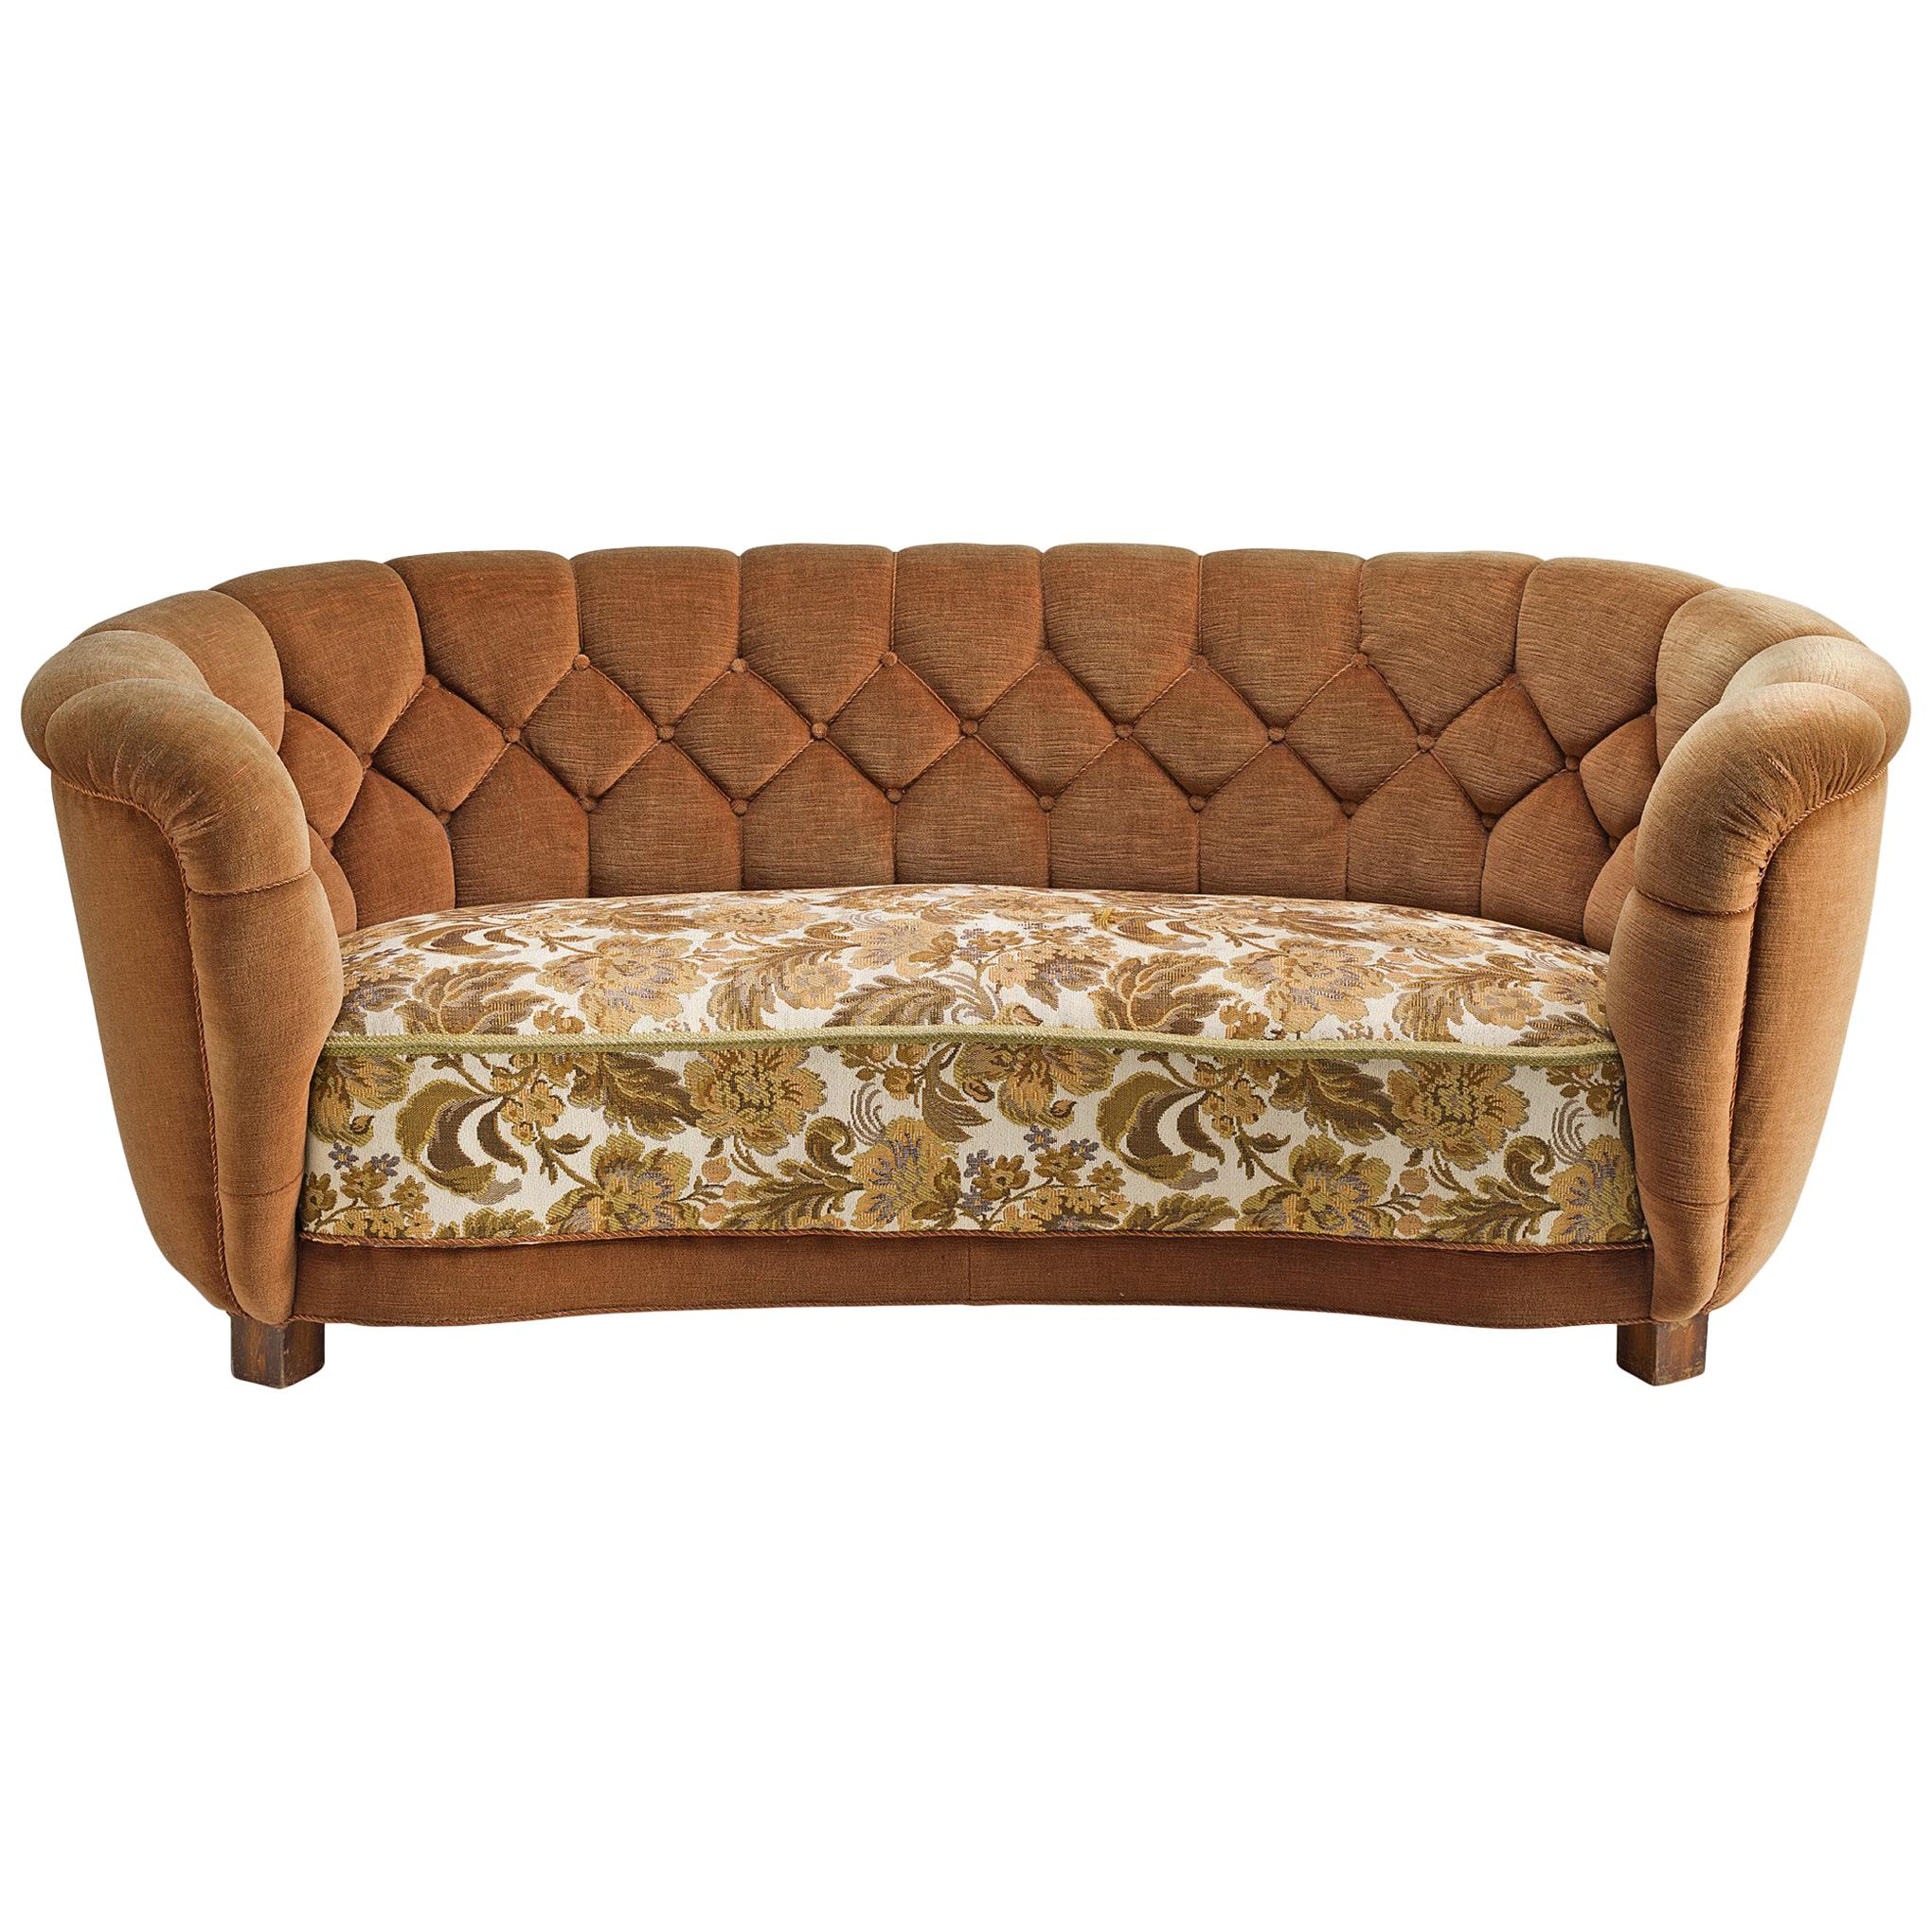 Danish Curved Quilted Sofa, 1950s